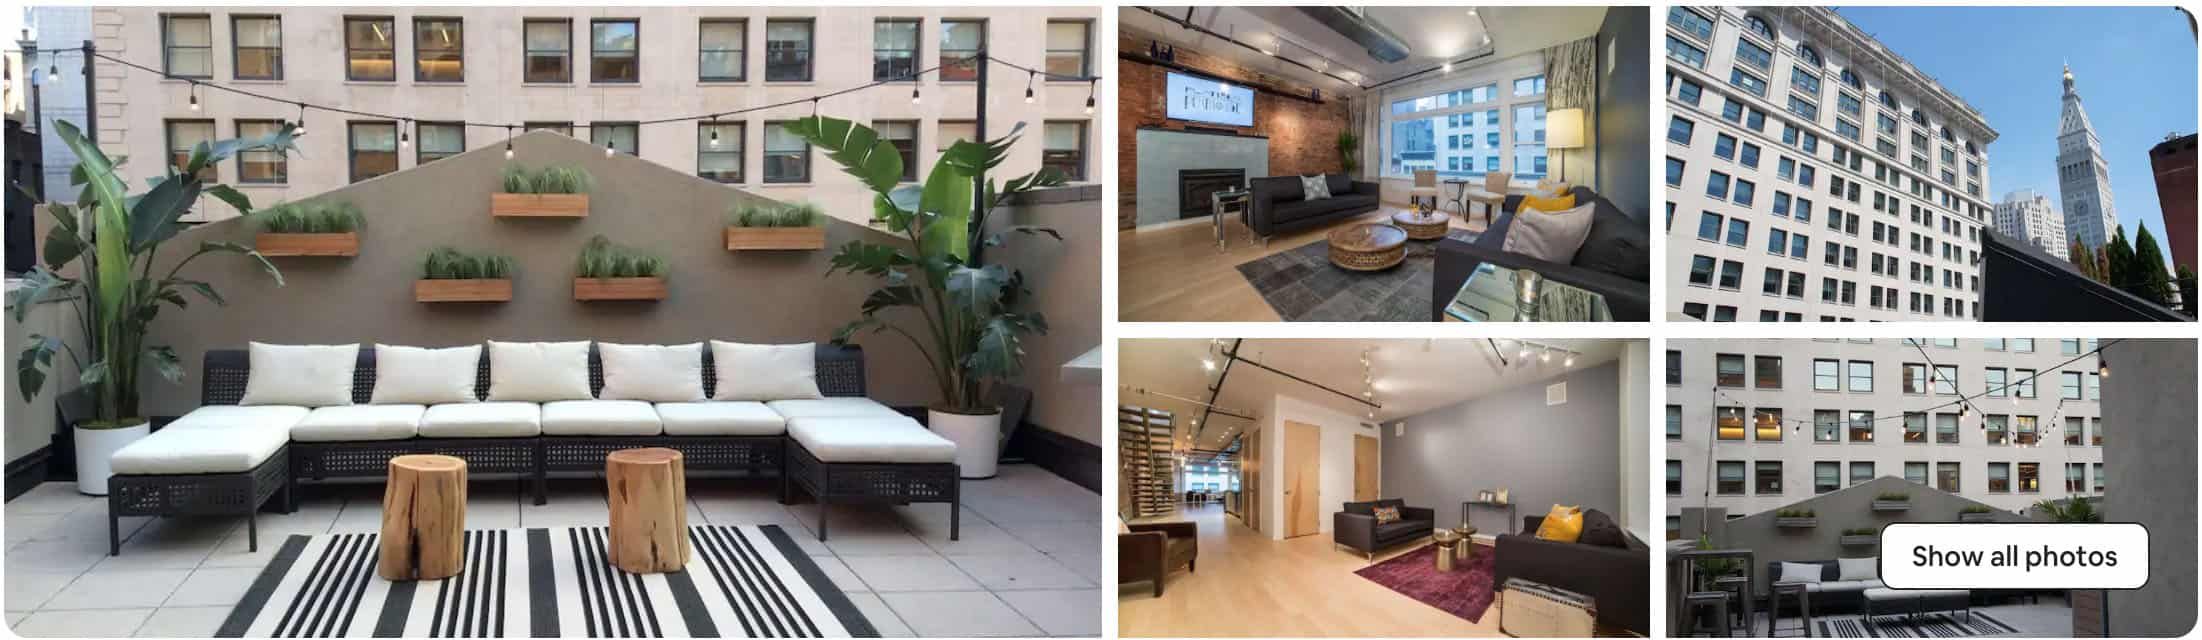 Airbnb wedding venue NYC penthouse space